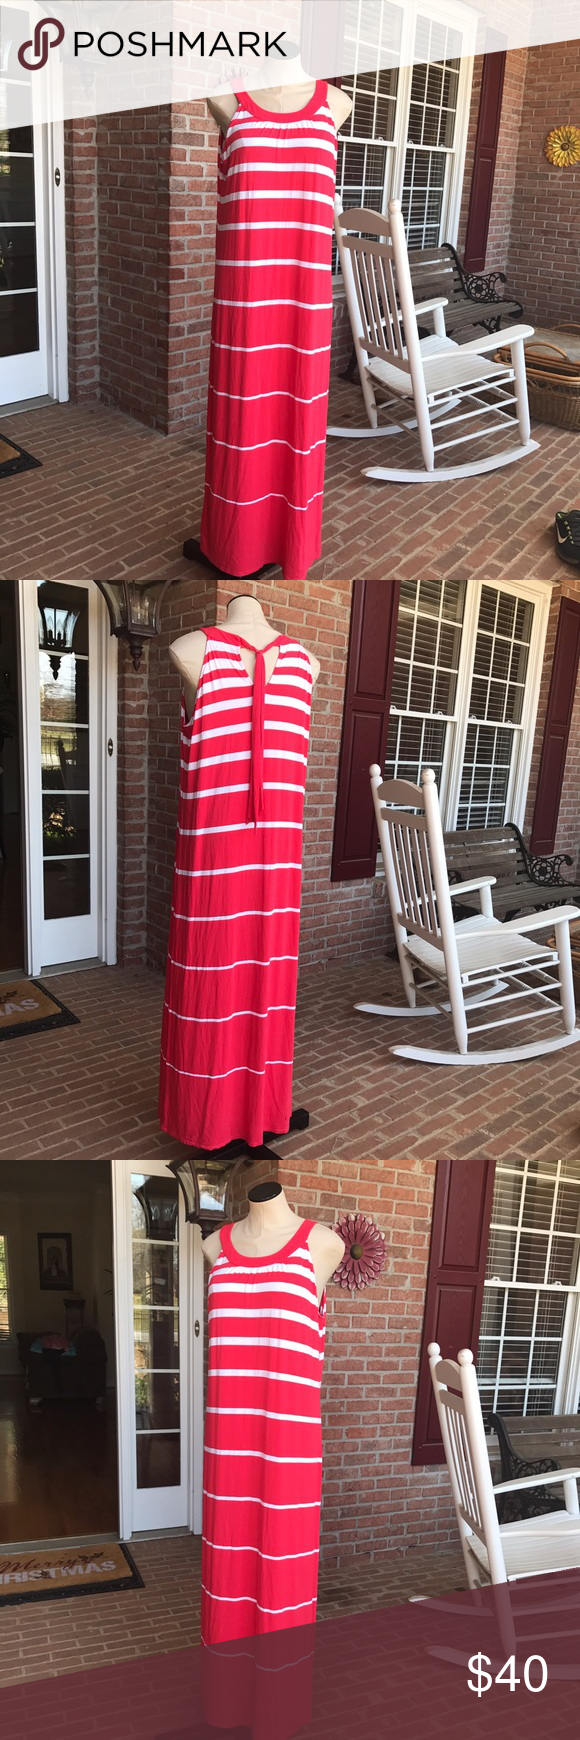 Cynthia Rowley maxi dress Pretty and comfortable maxi dress by Cynthia Rowley. Coral-ish/dark pink with white stripes. Ties around back of neck. In pristine condition 💝 Cynthia Rowley Dresses Maxi